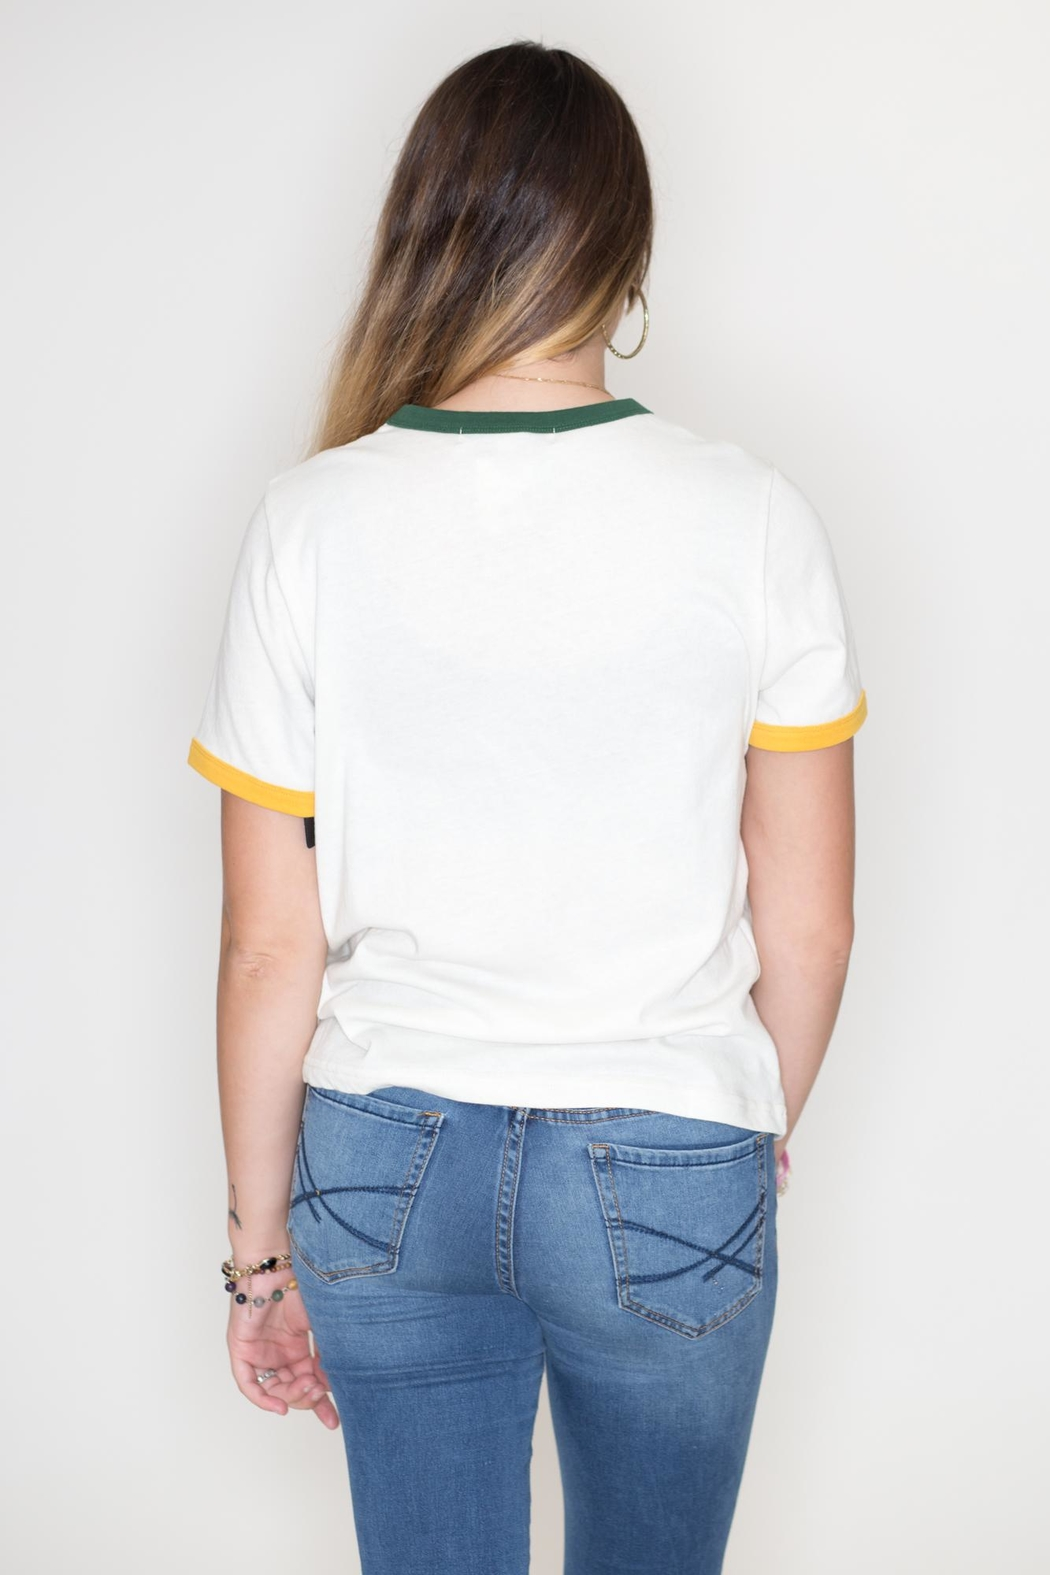 Junk Food Clothing Green Bay Packers - Side Cropped Image